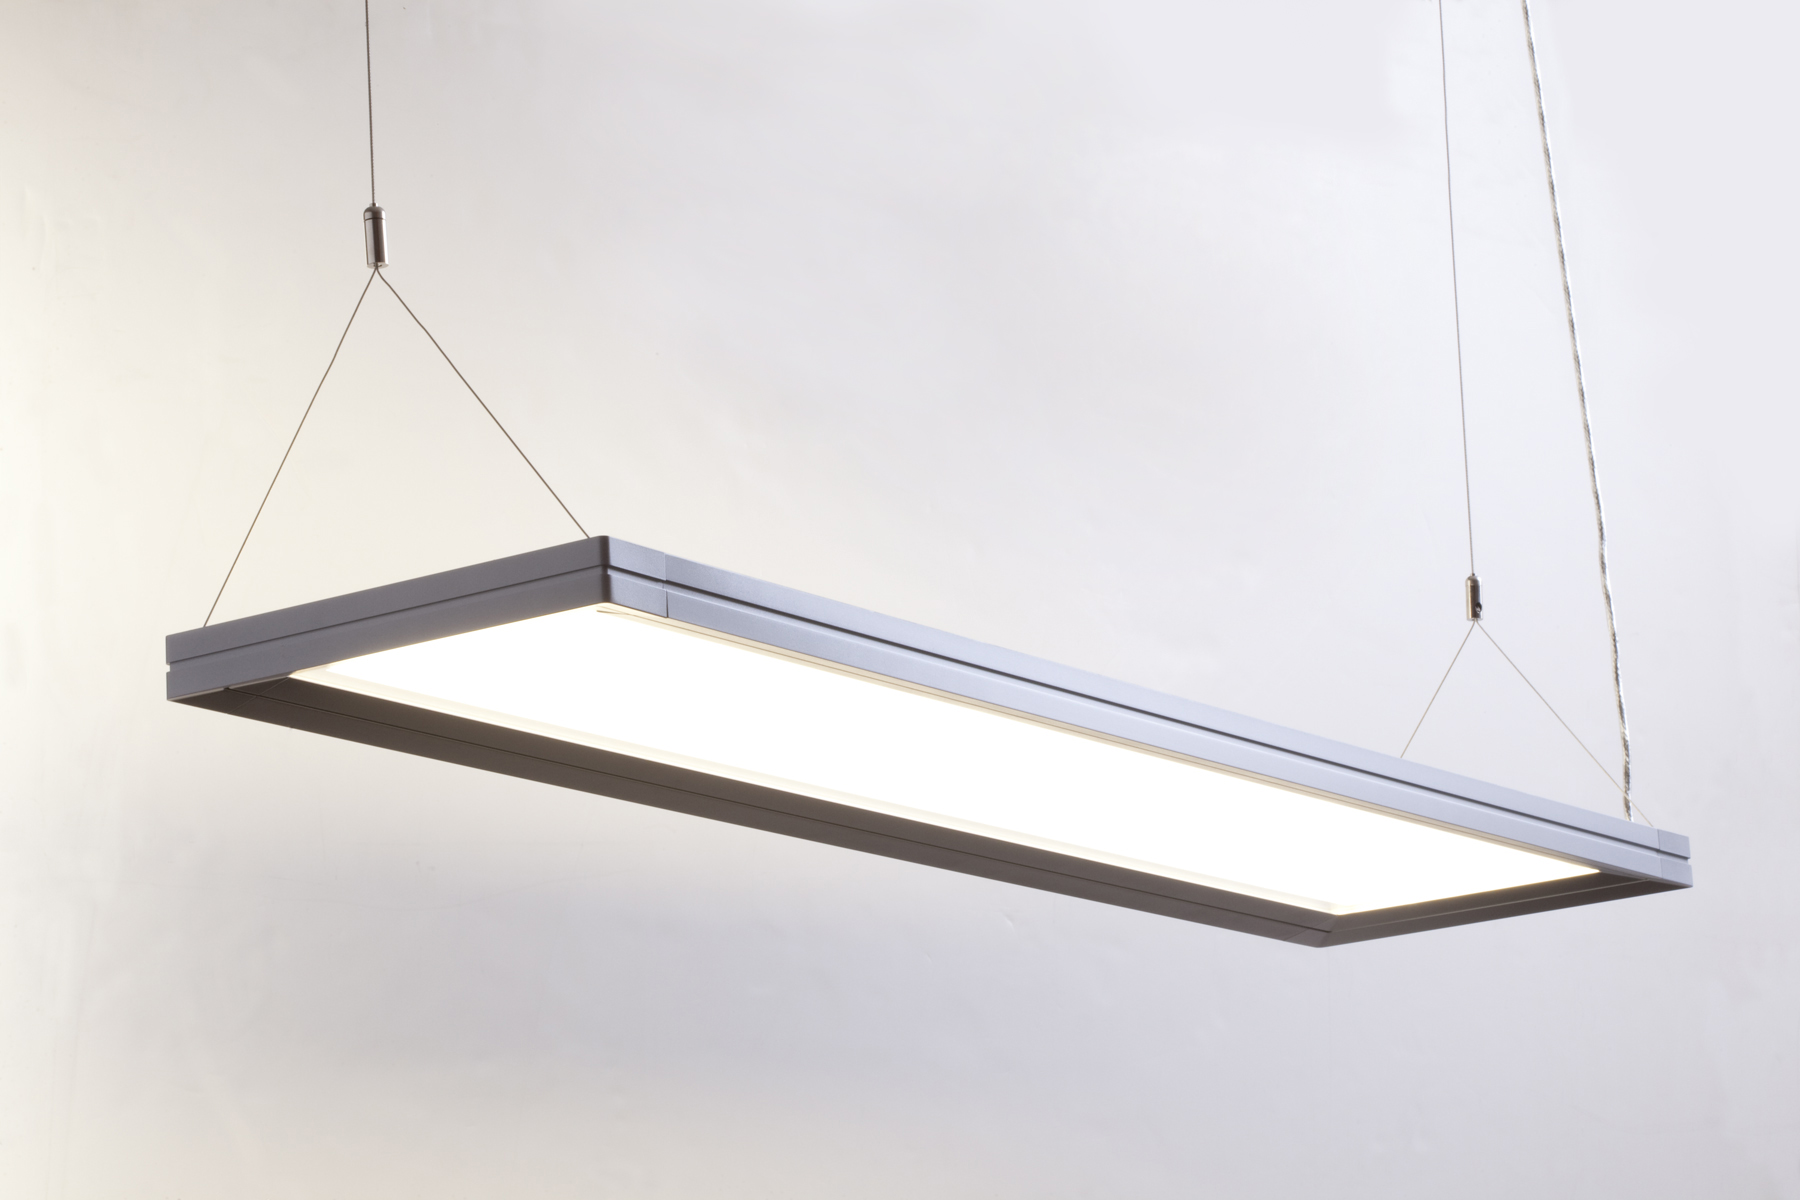 New ge lumination led luminaires stop boring ceilings for Suspente luminaire